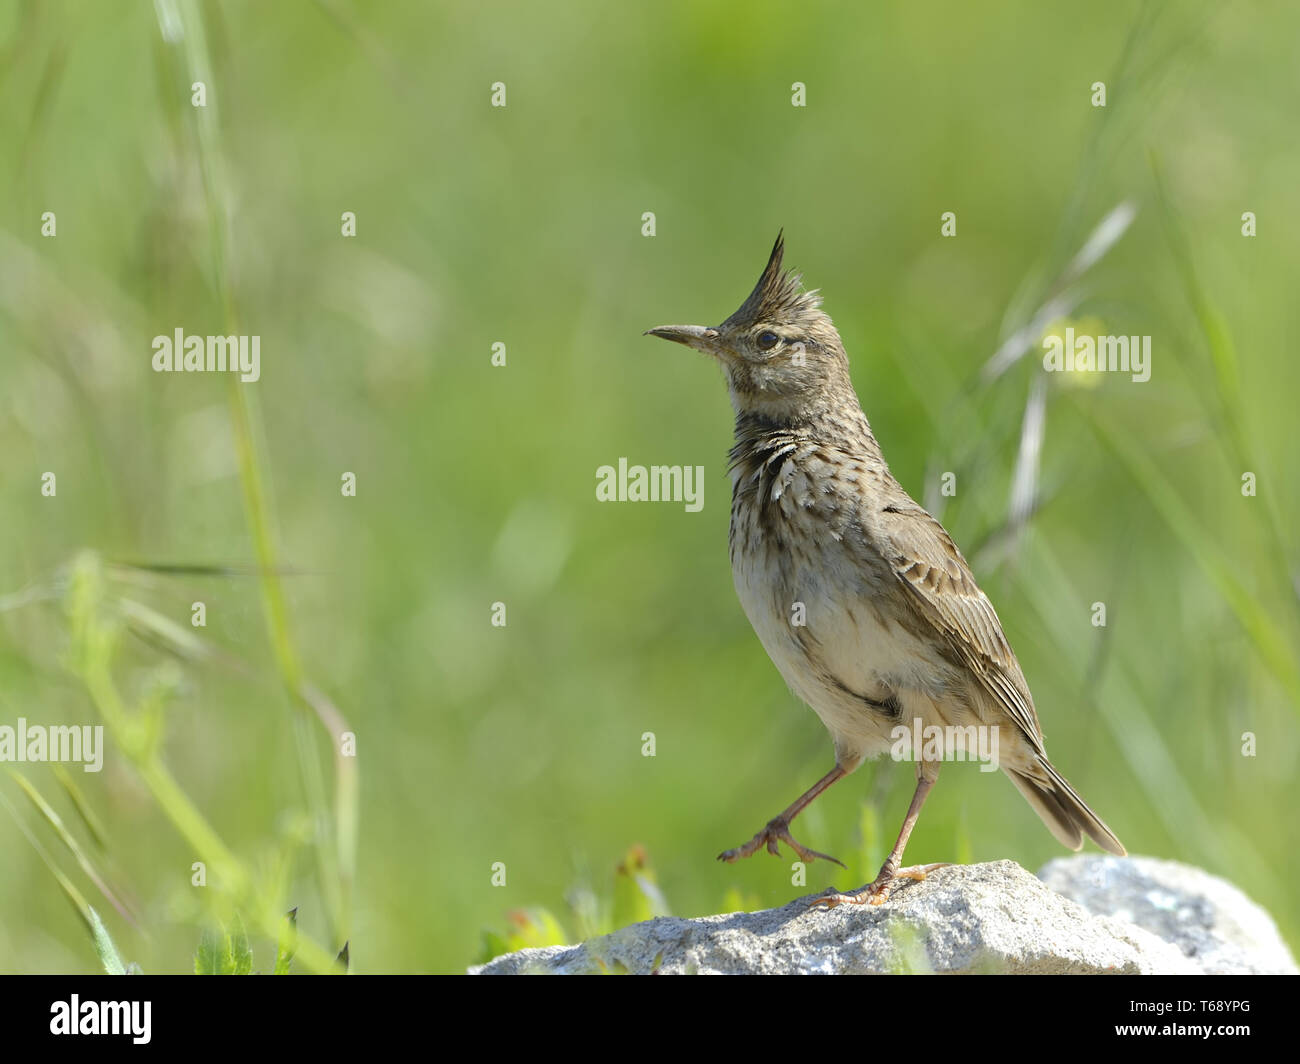 Crested Lark, Galerida cristata, Bulgaria, Europe Stock Photo